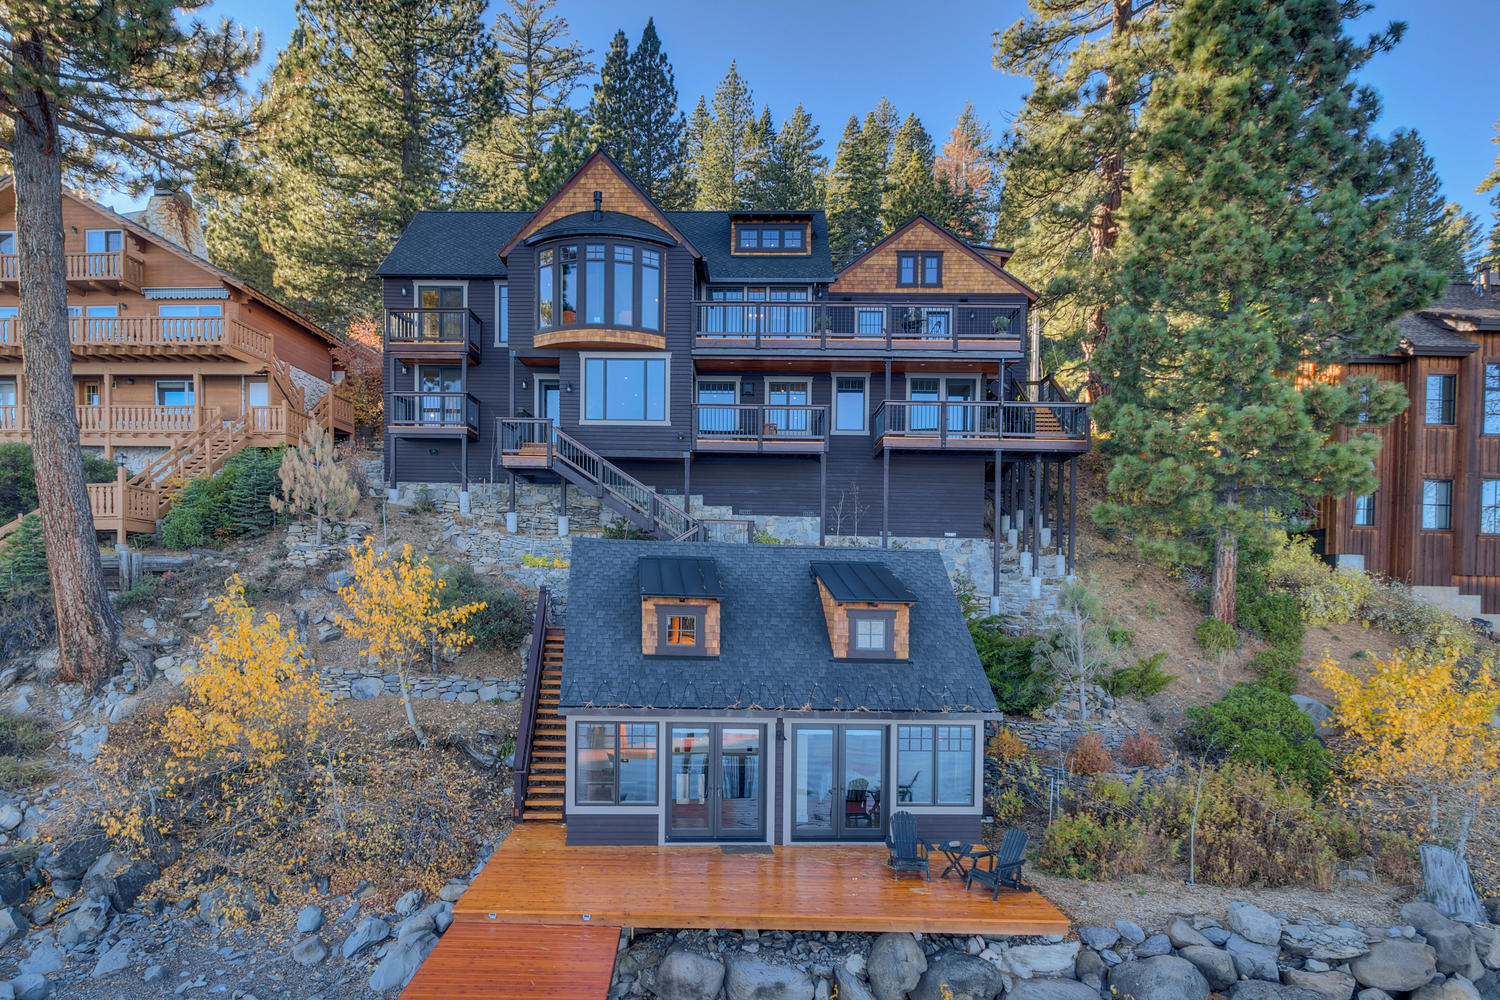 cabin hesstonspeedway rentals ca in info new rent lake cabins for tahoe years south lakefront near